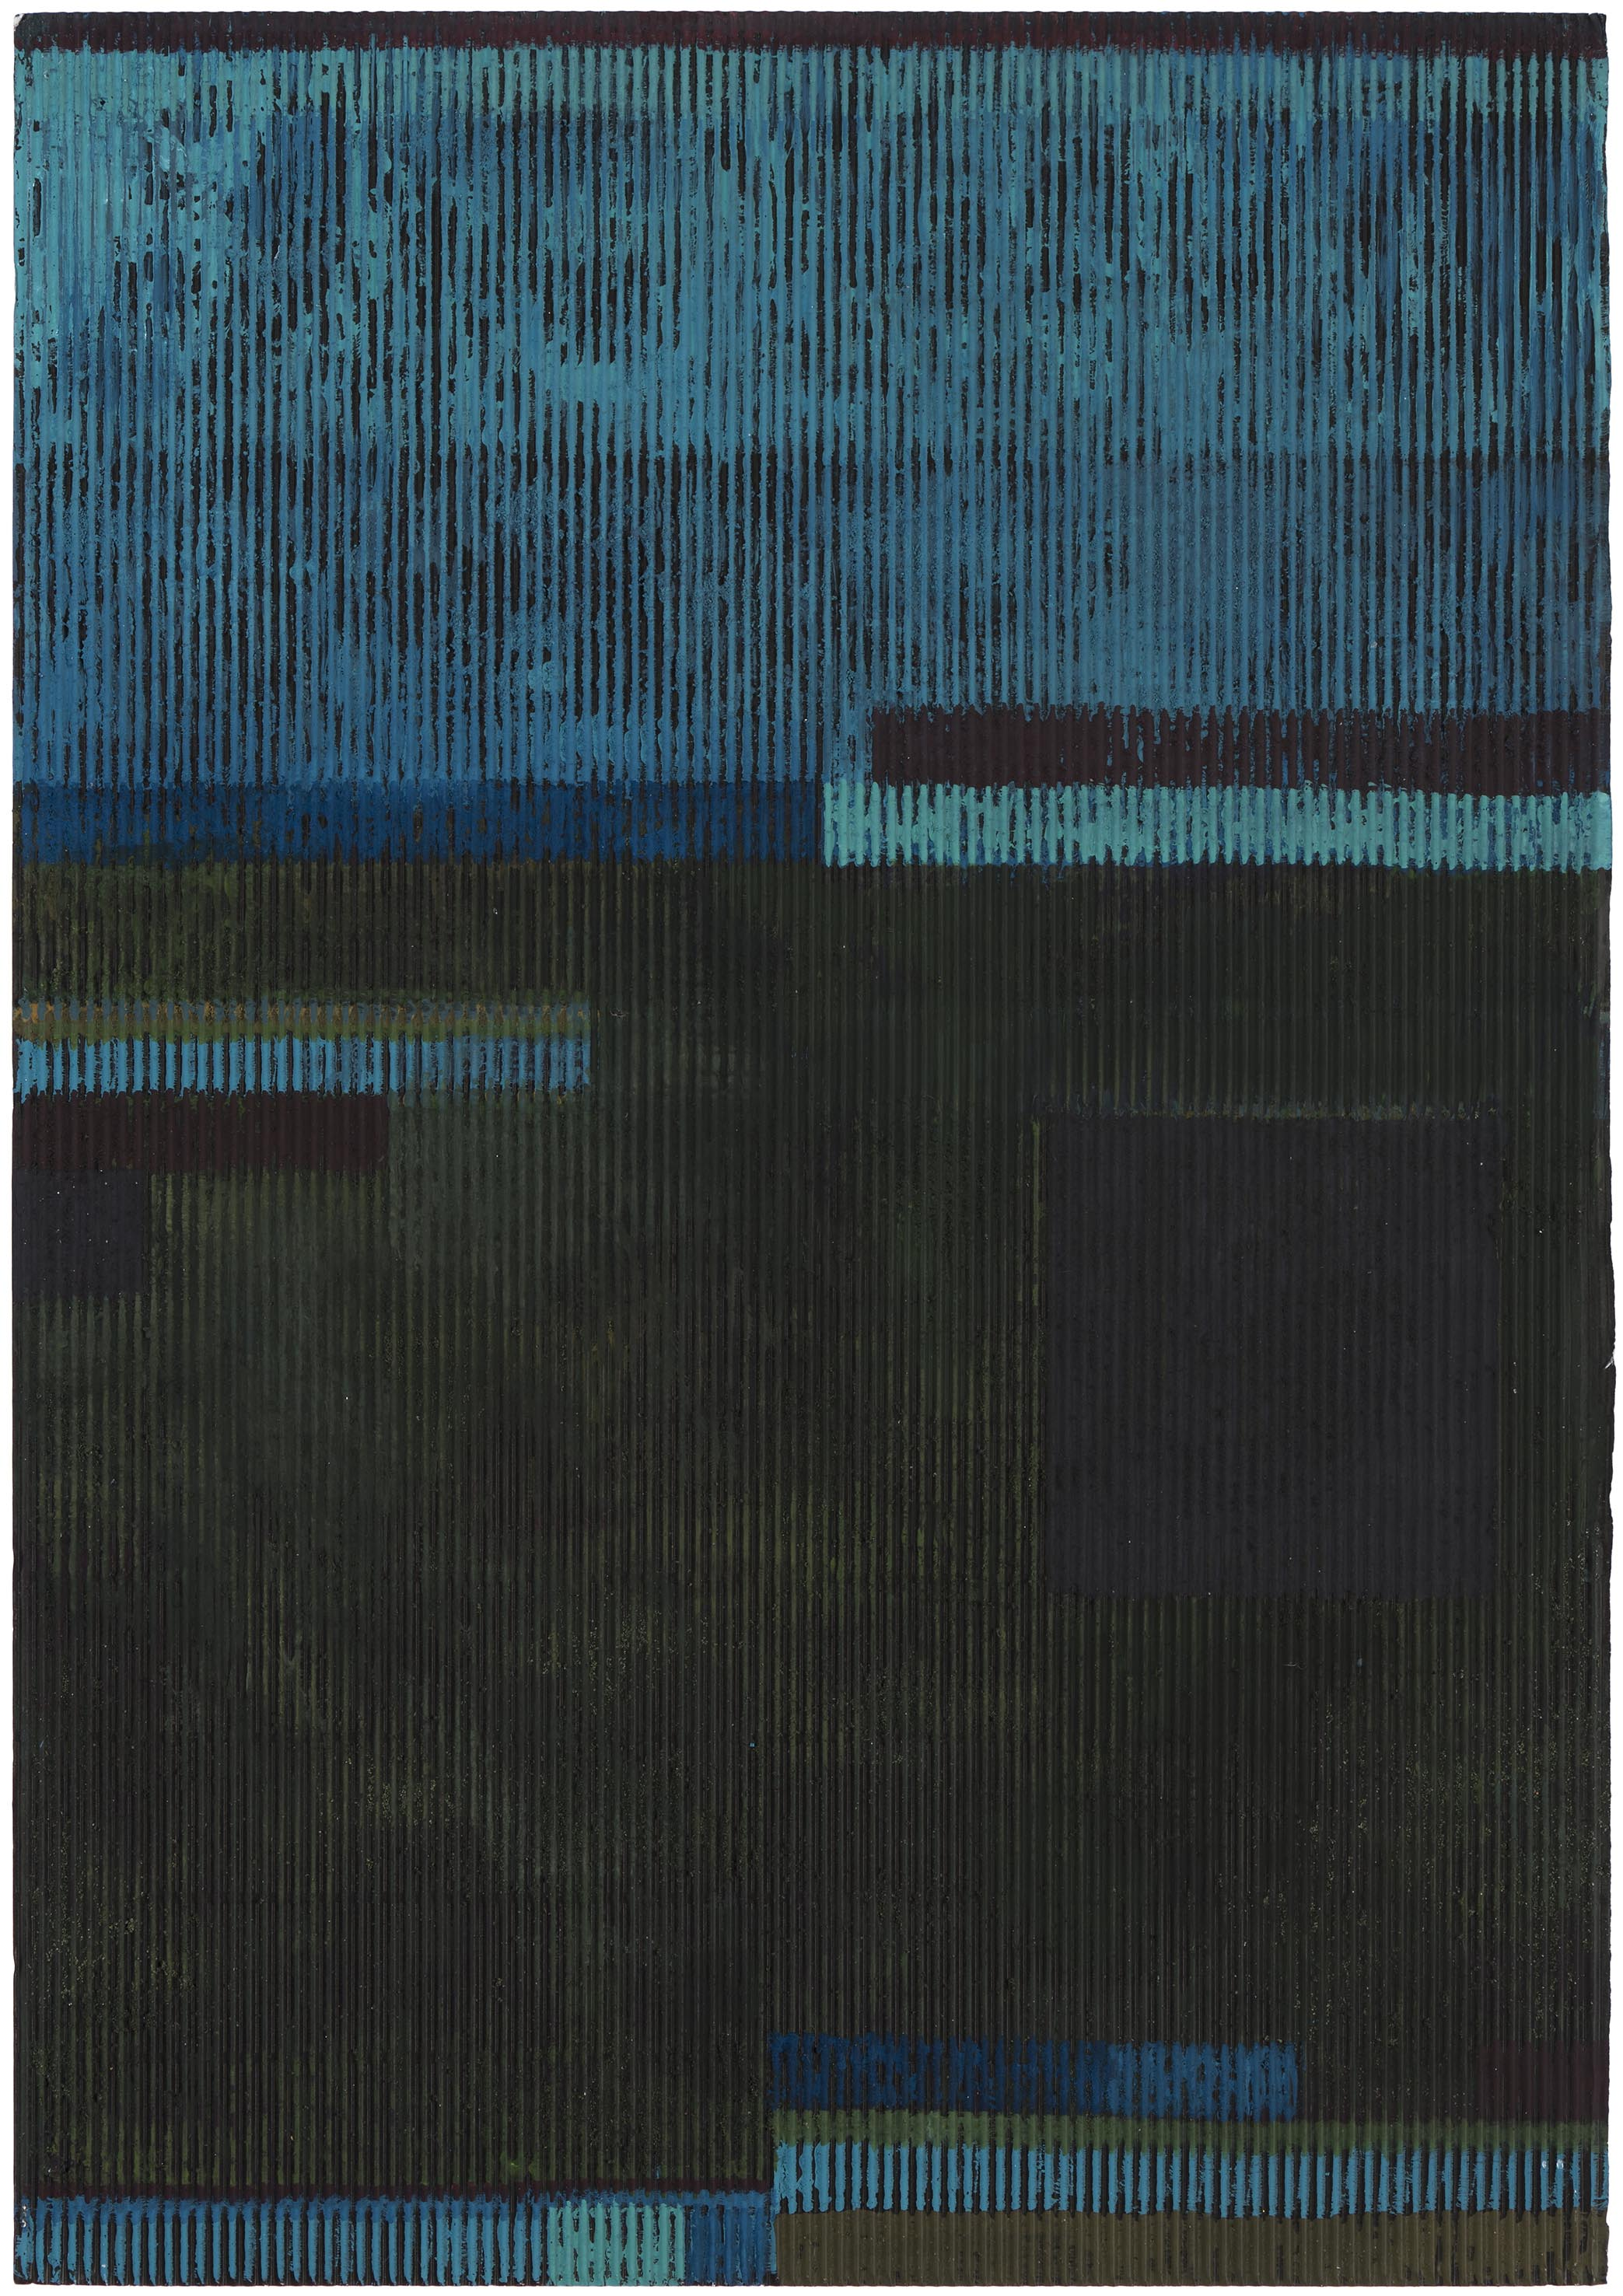 Midsummer night 2 (the blues). 2015. gouache and acrylic on corrugated card. 50 x 35 cm.$1,500